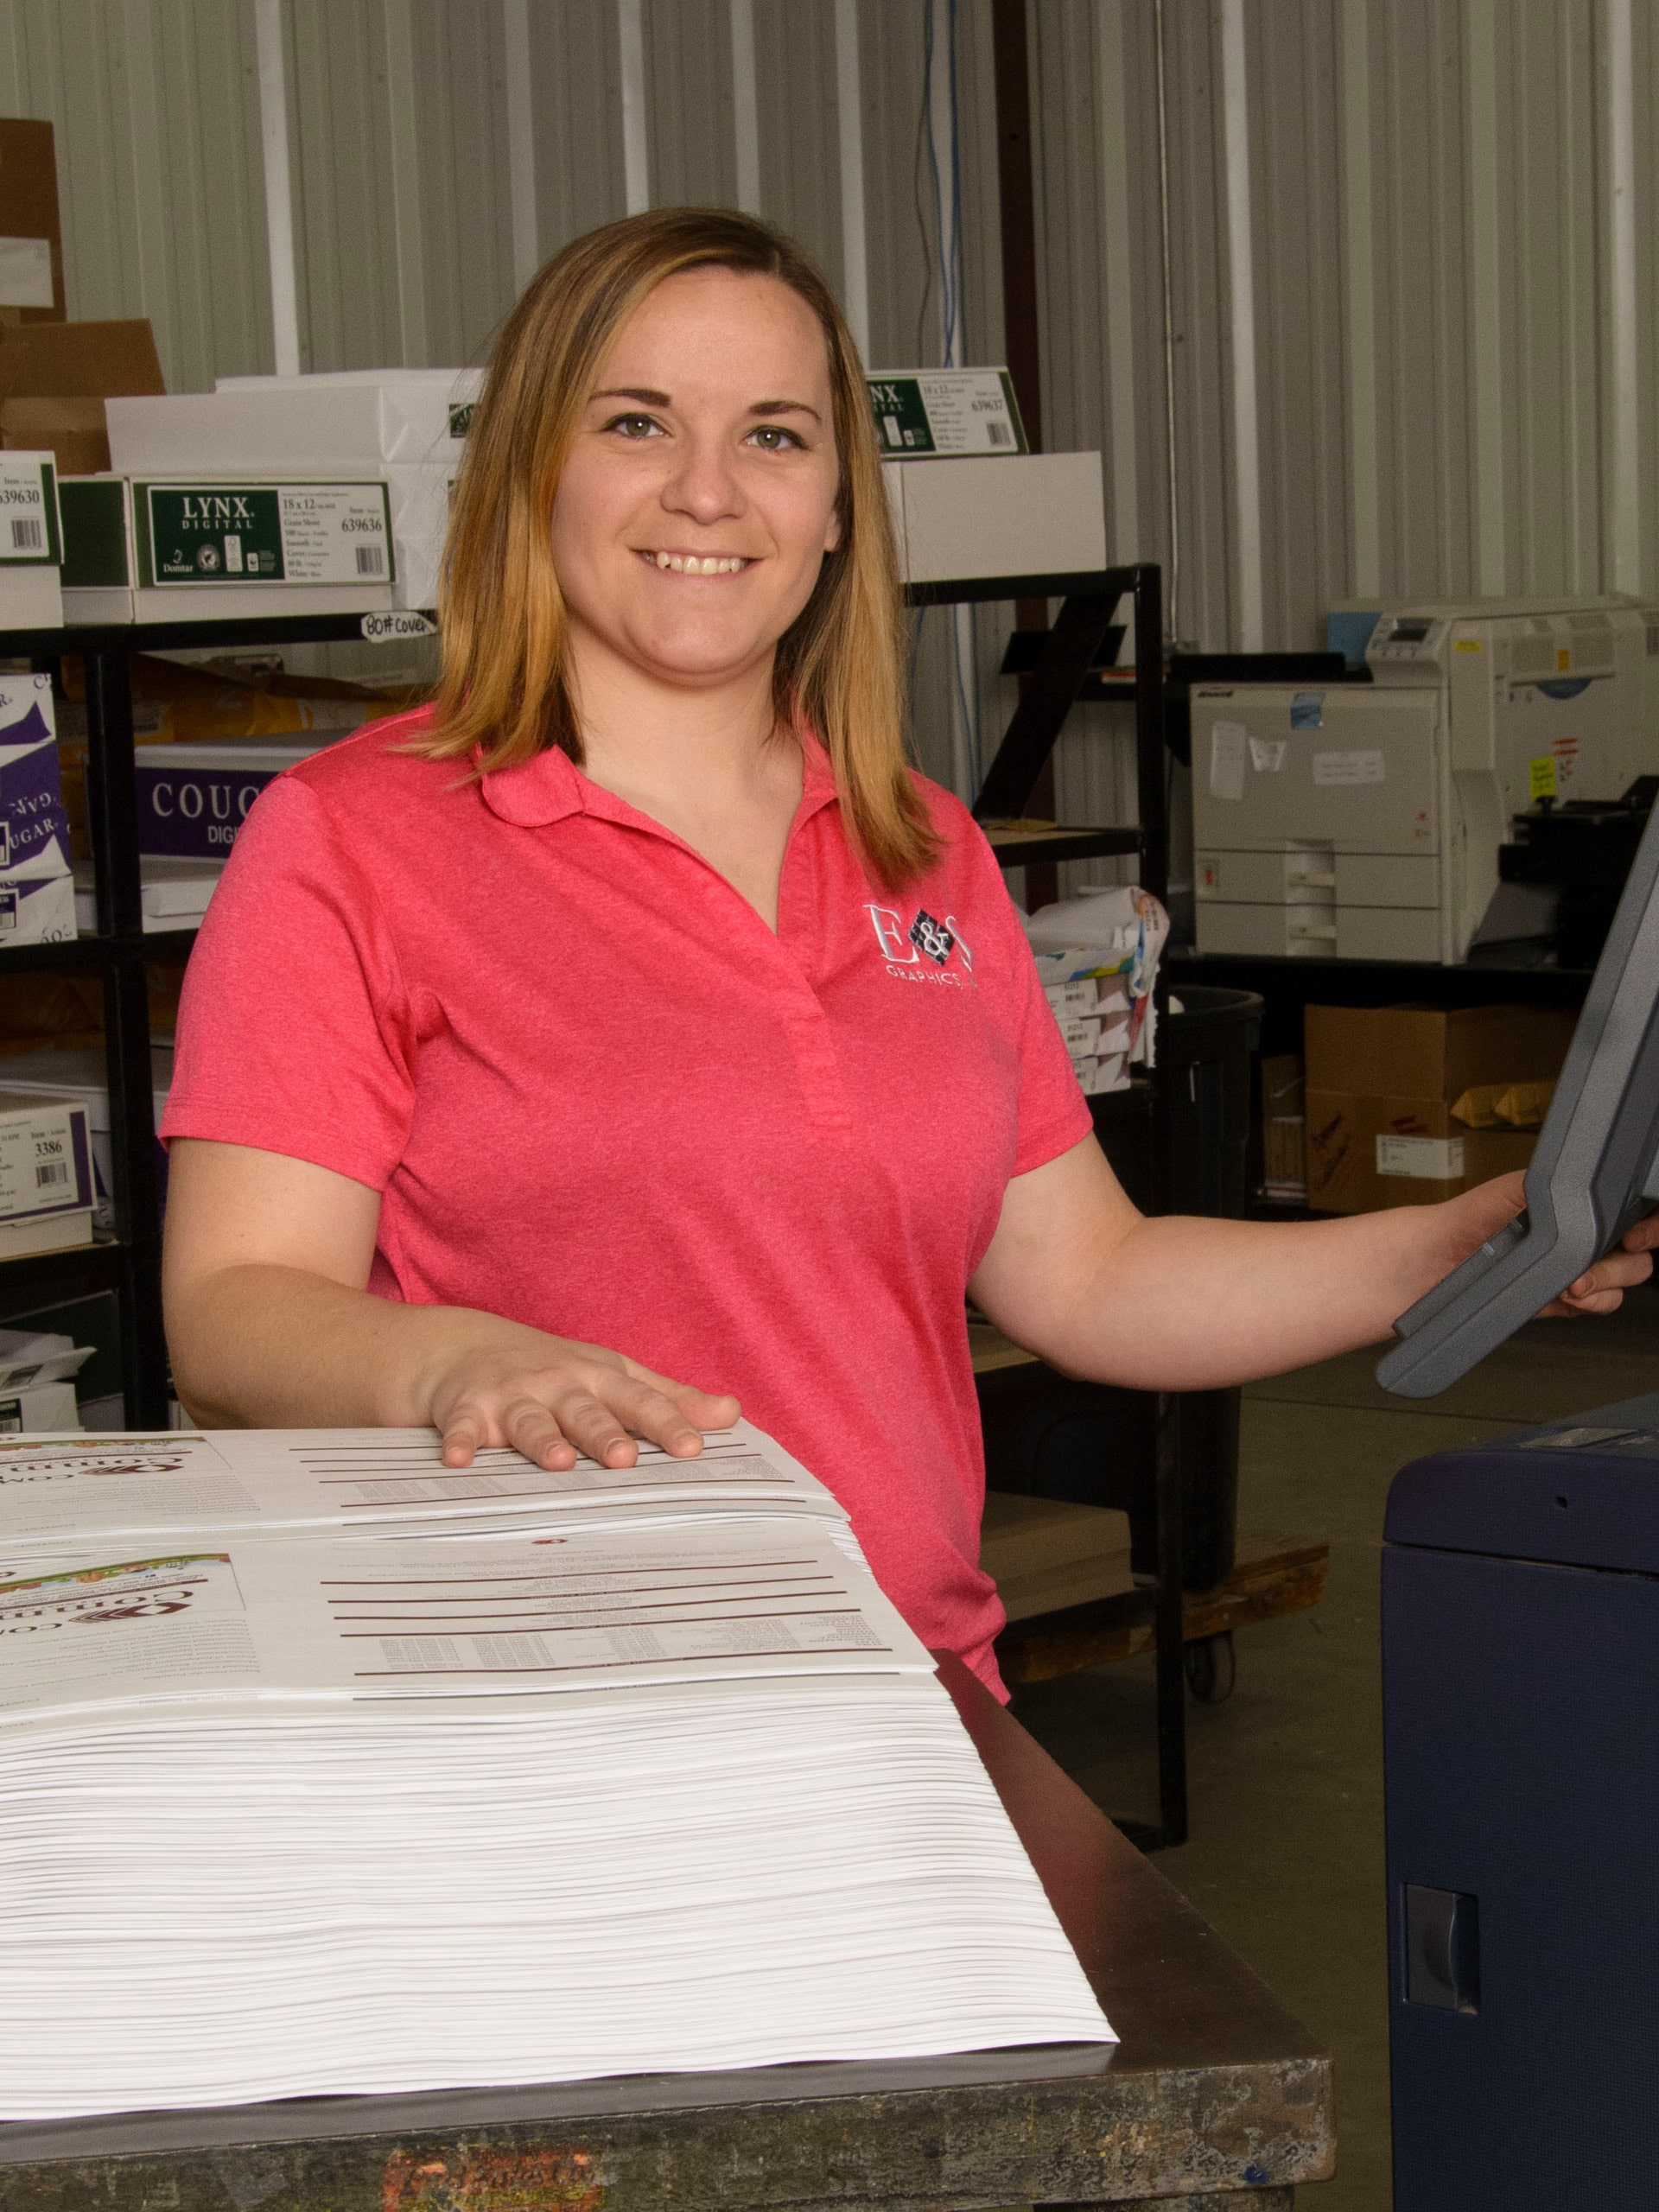 Kaylyn Hooks, Print Production Manager, E & S Graphics